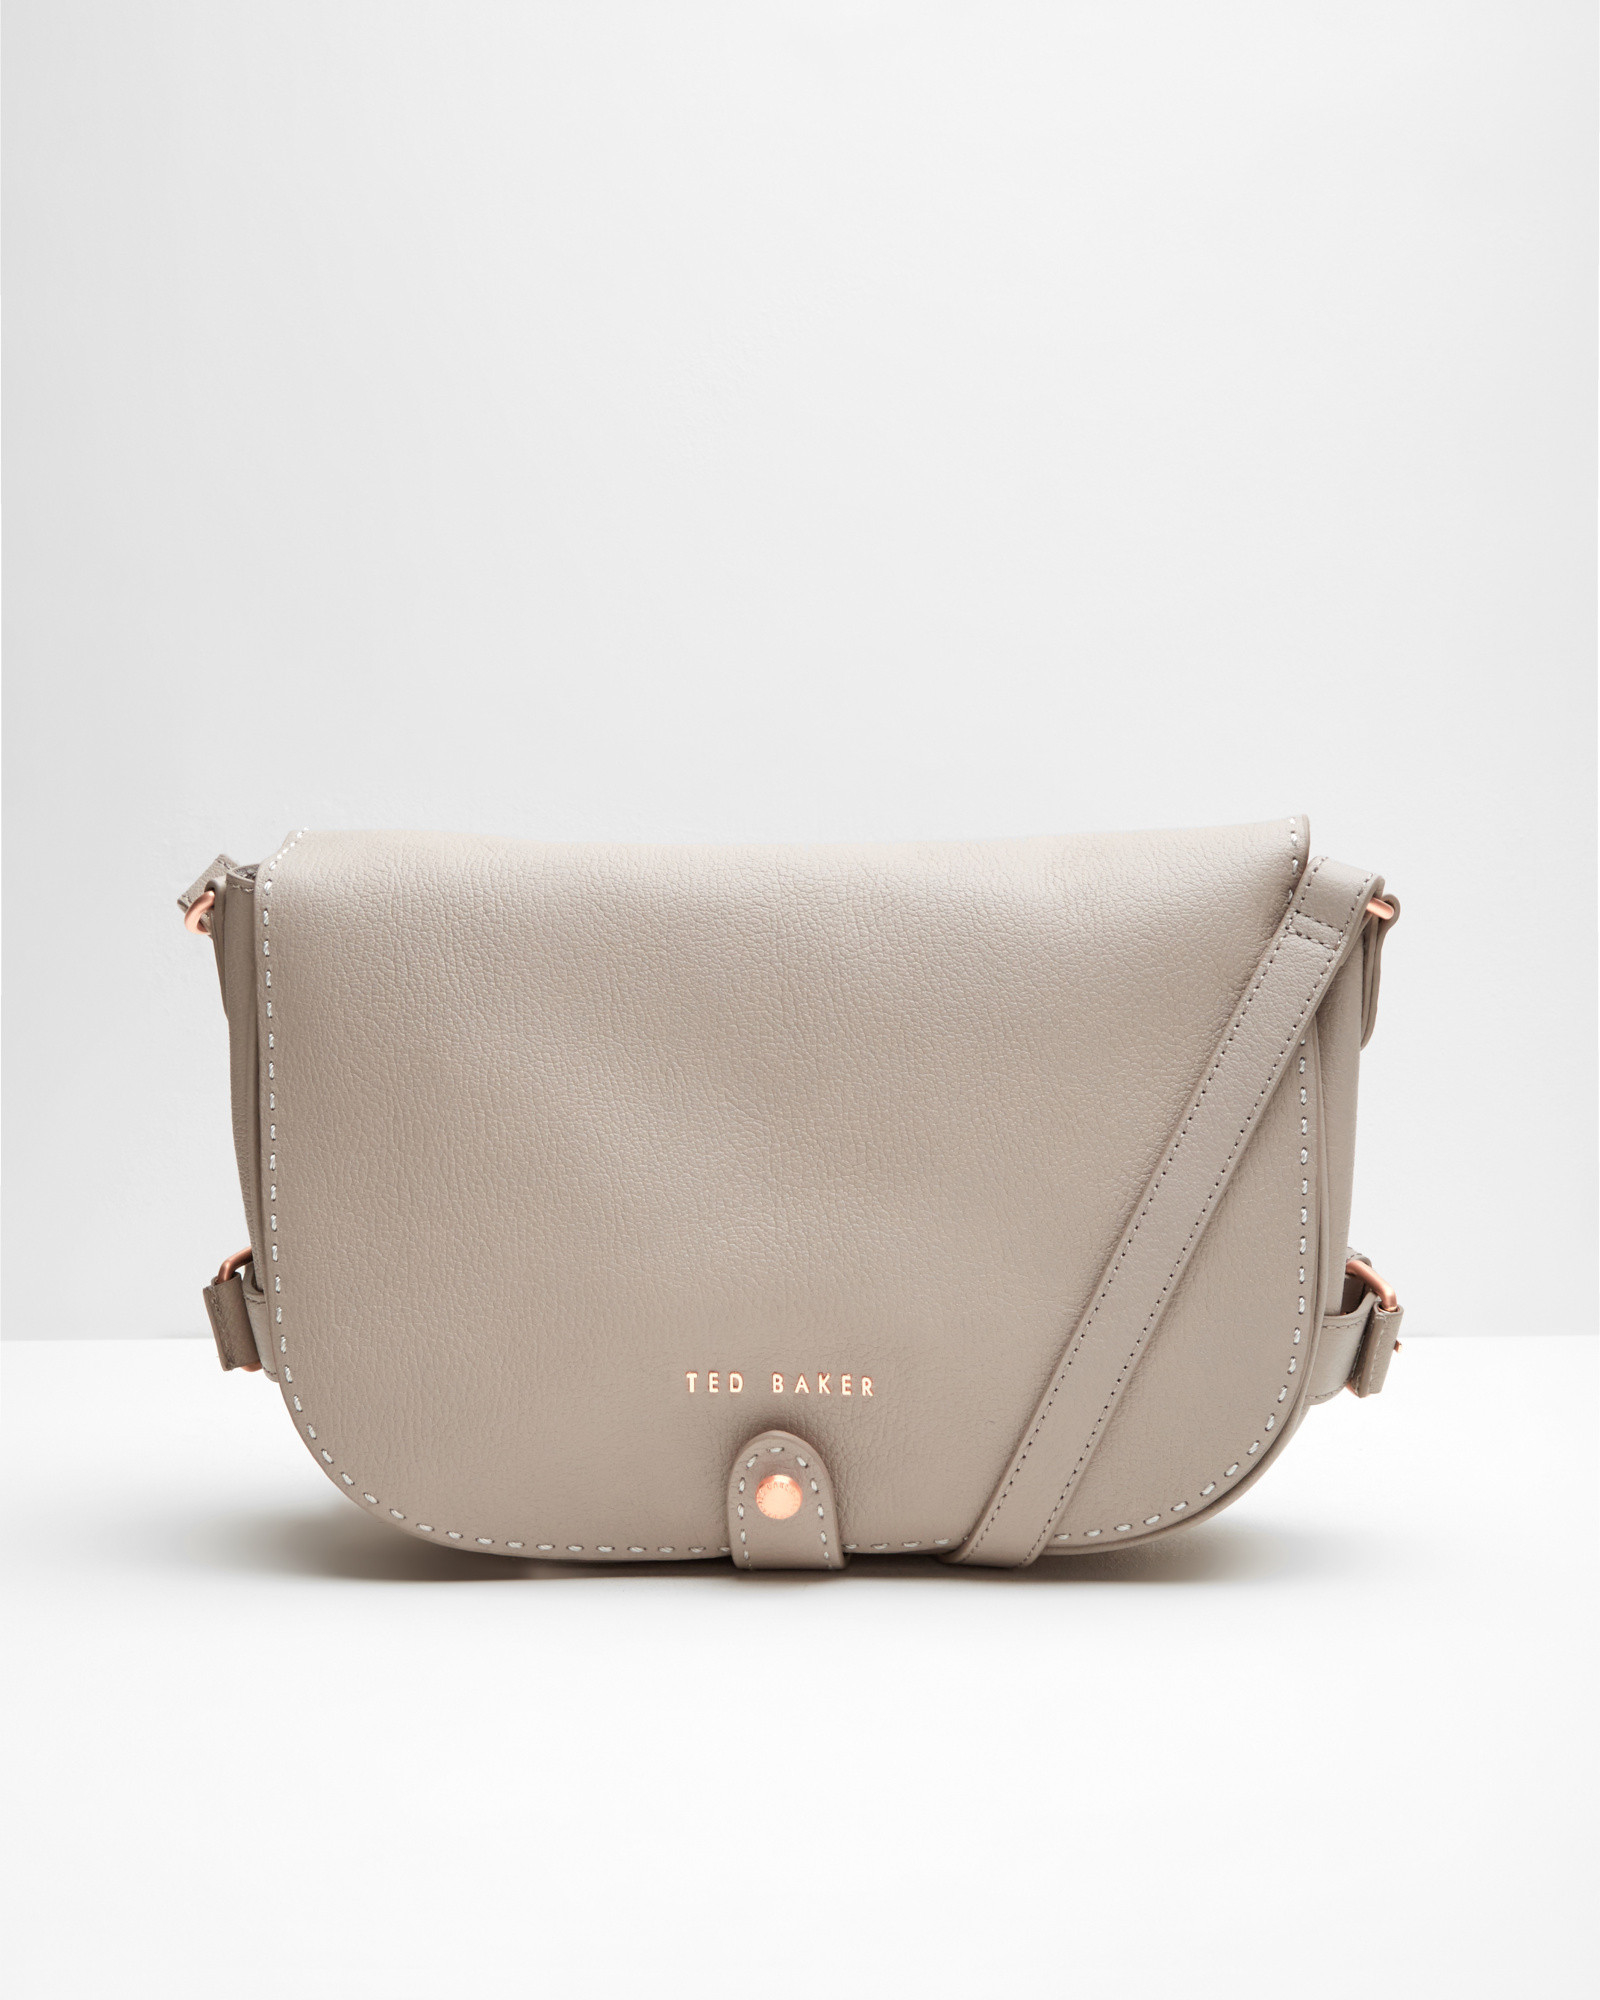 e5993bf67cc Ted Baker Leather Crossbody Saddle Bag in Natural - Lyst